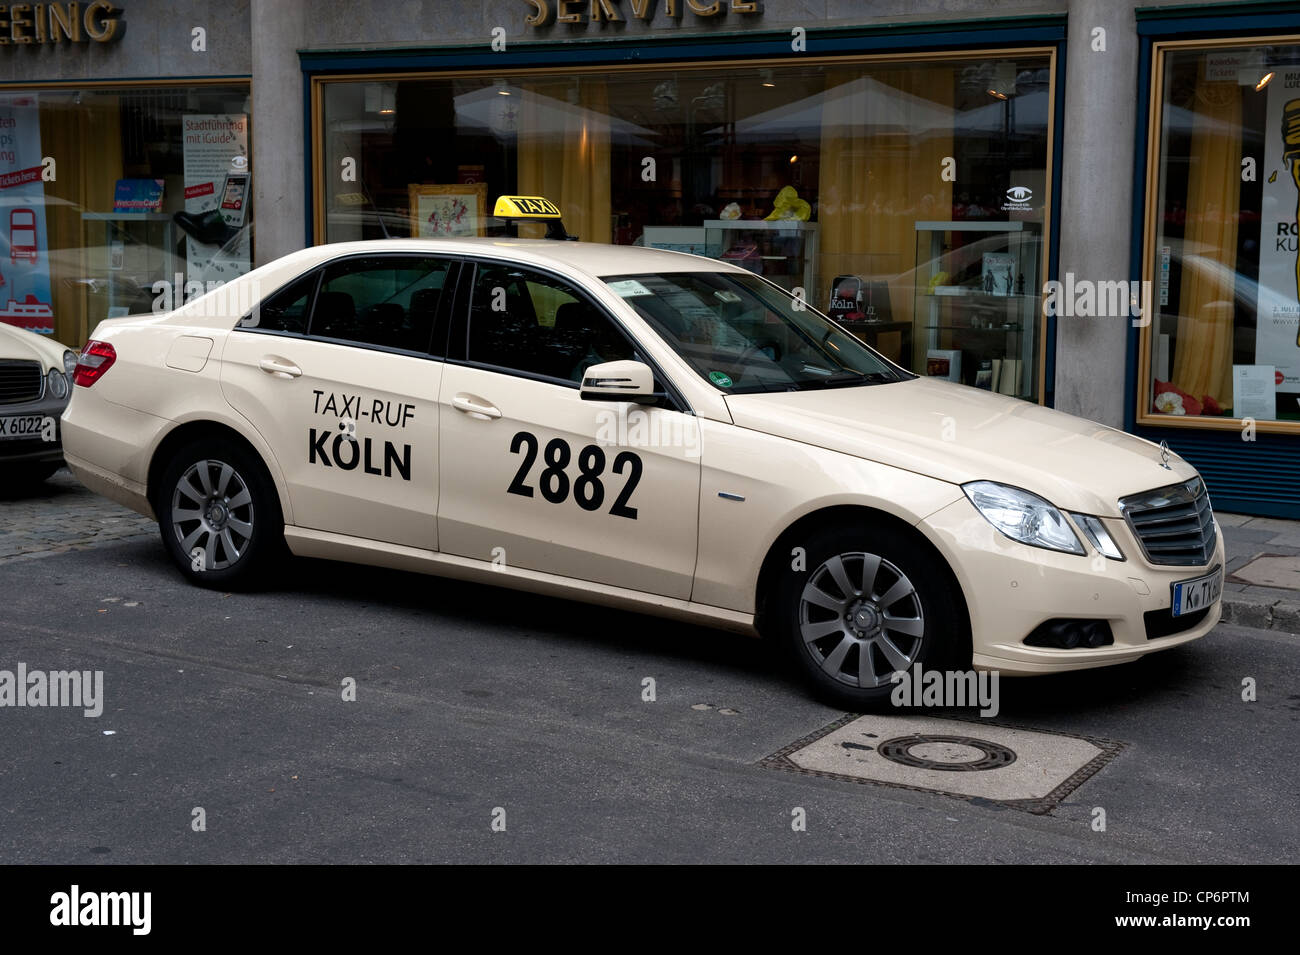 koln 2882 taxi cab mercedes car cologne germany europe eu stock photo 48092820 alamy. Black Bedroom Furniture Sets. Home Design Ideas